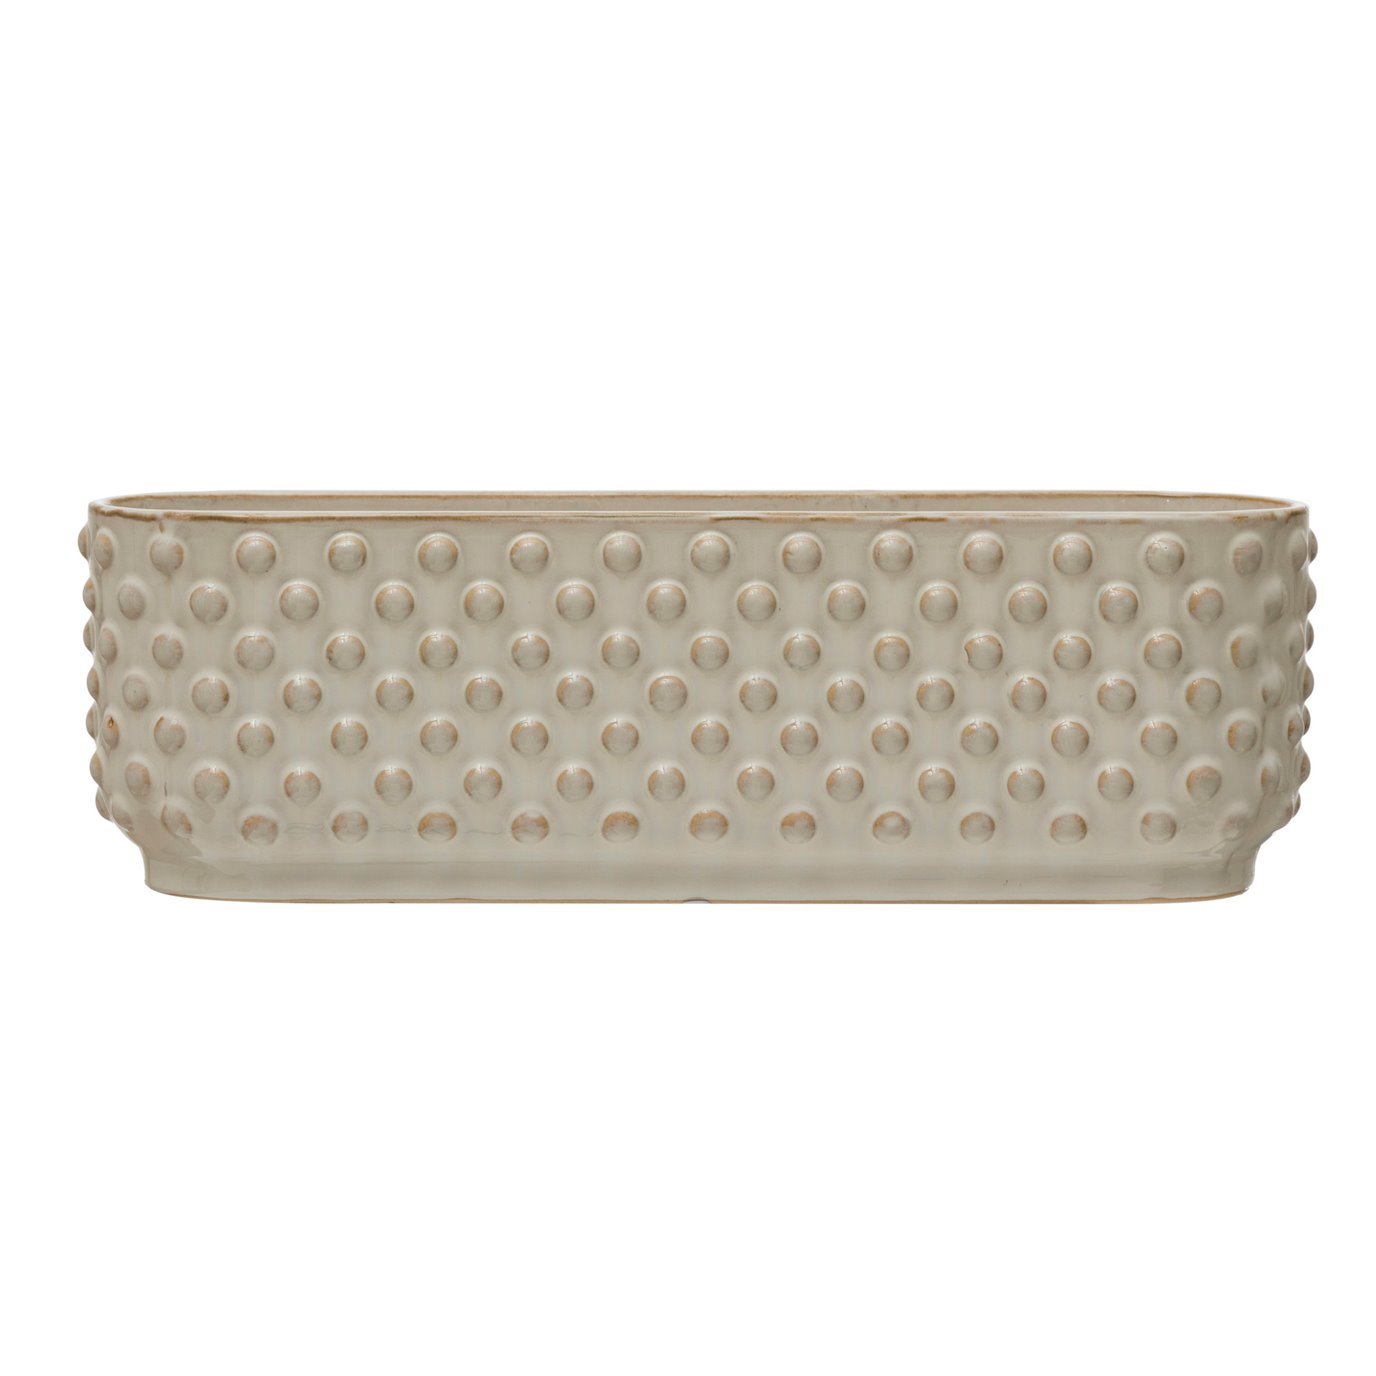 Stoneware Hobnail Window Planter with 3 Sections, Reactive Glaze, White (Each One Will Vary)